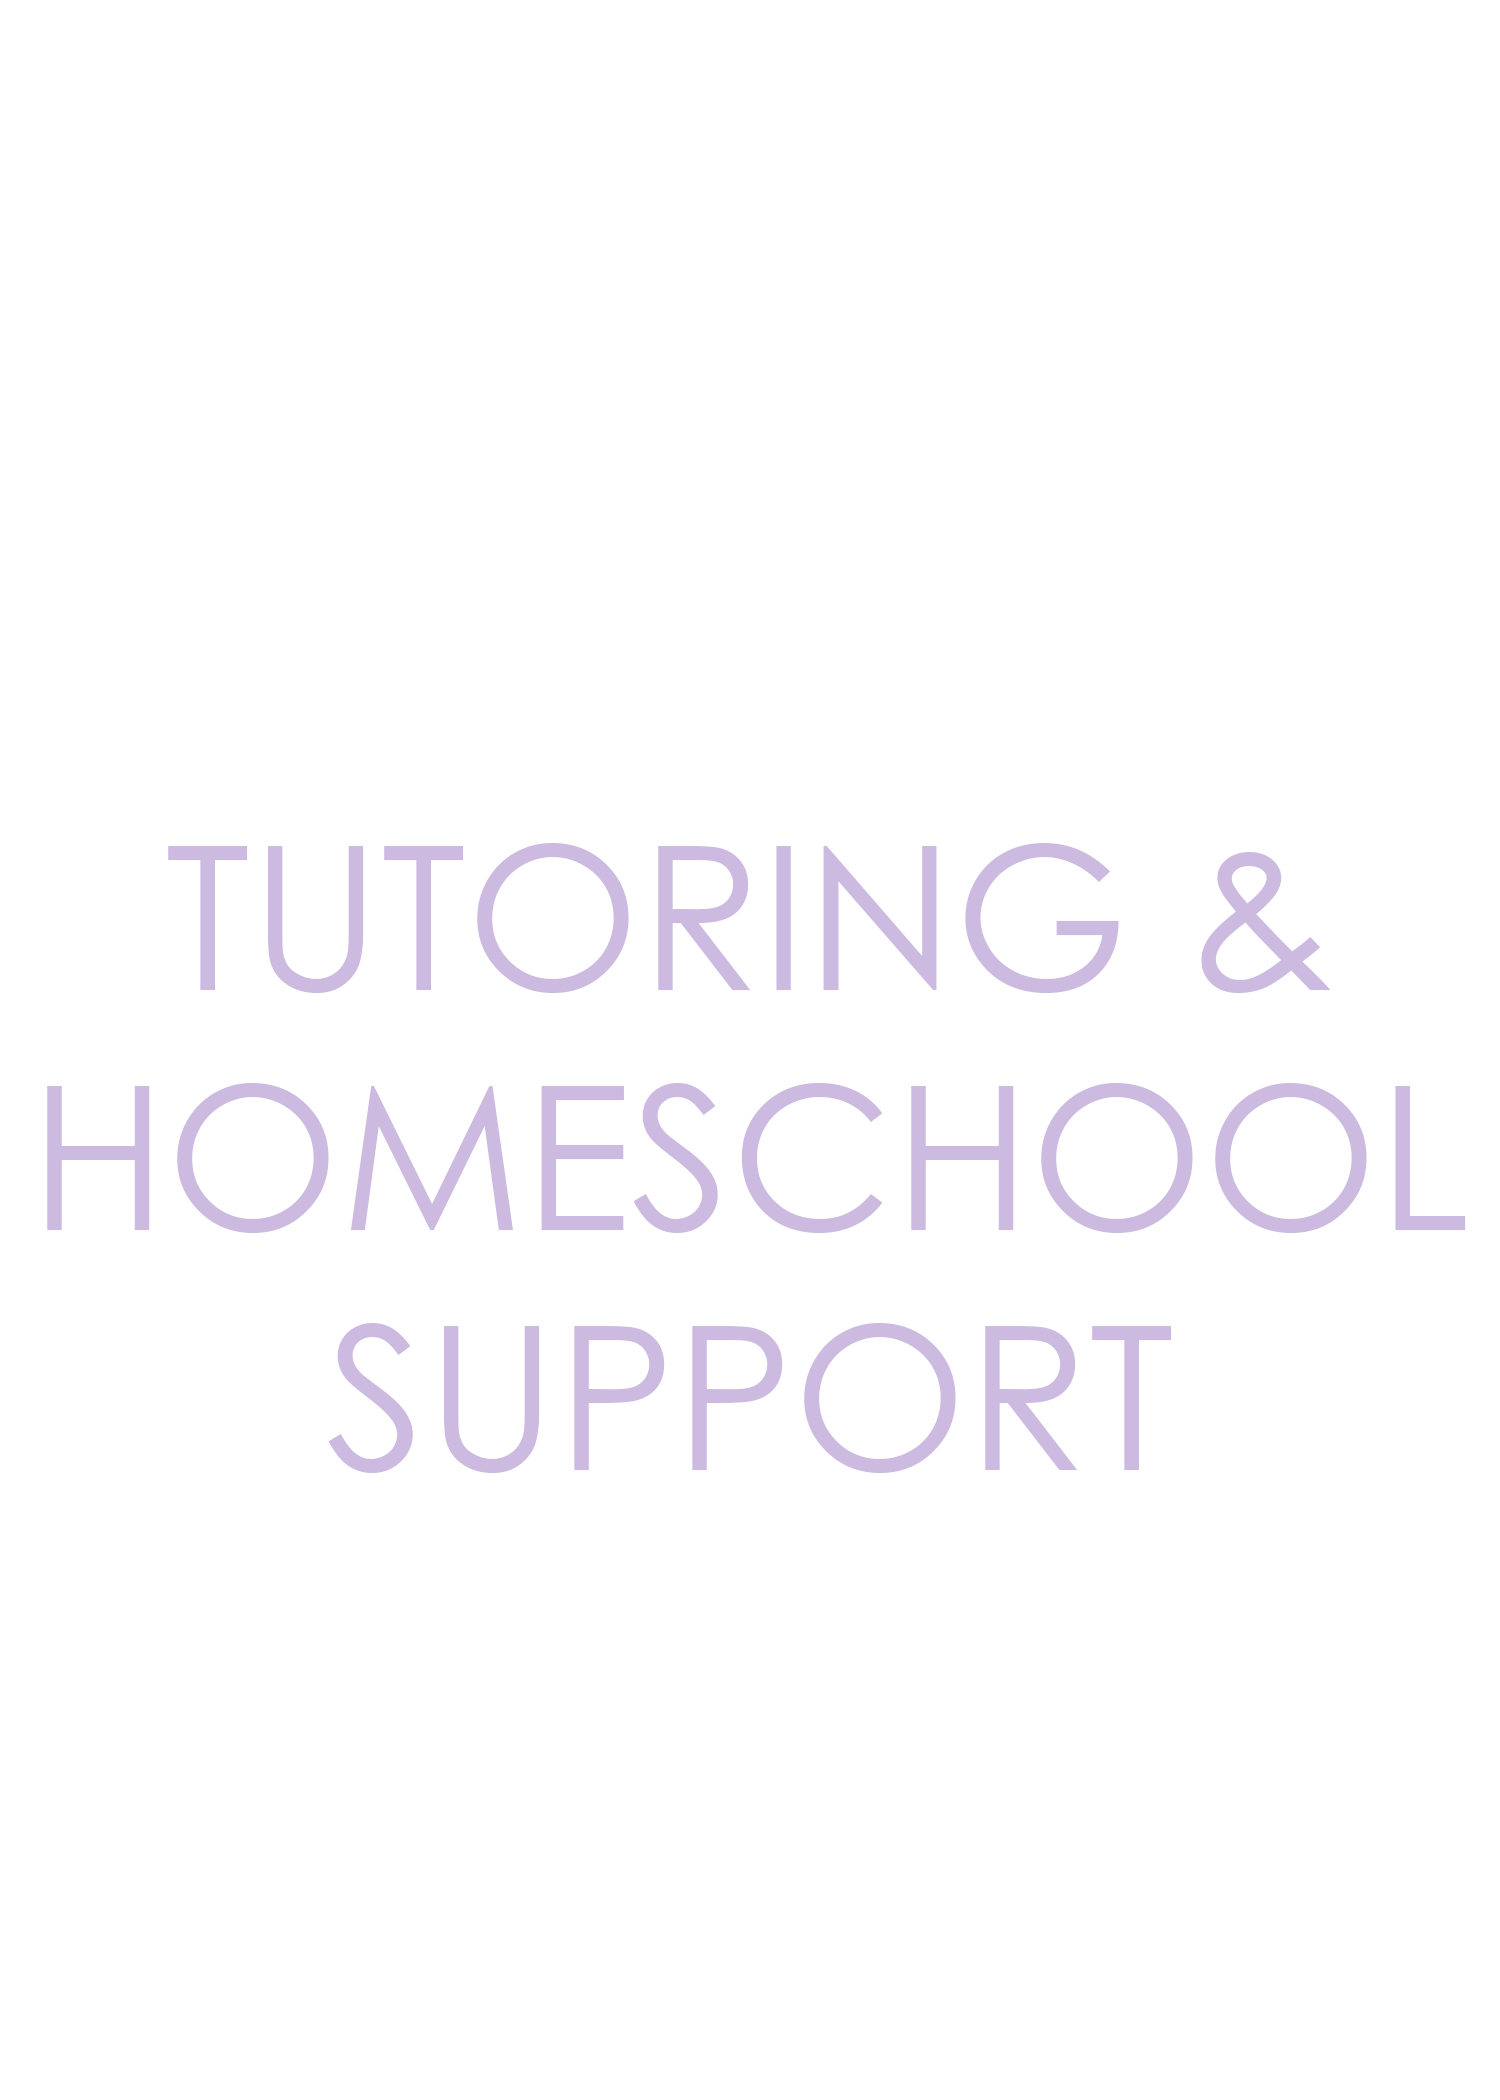 TUTORING & HOMESCHOOL SUPPORT.png